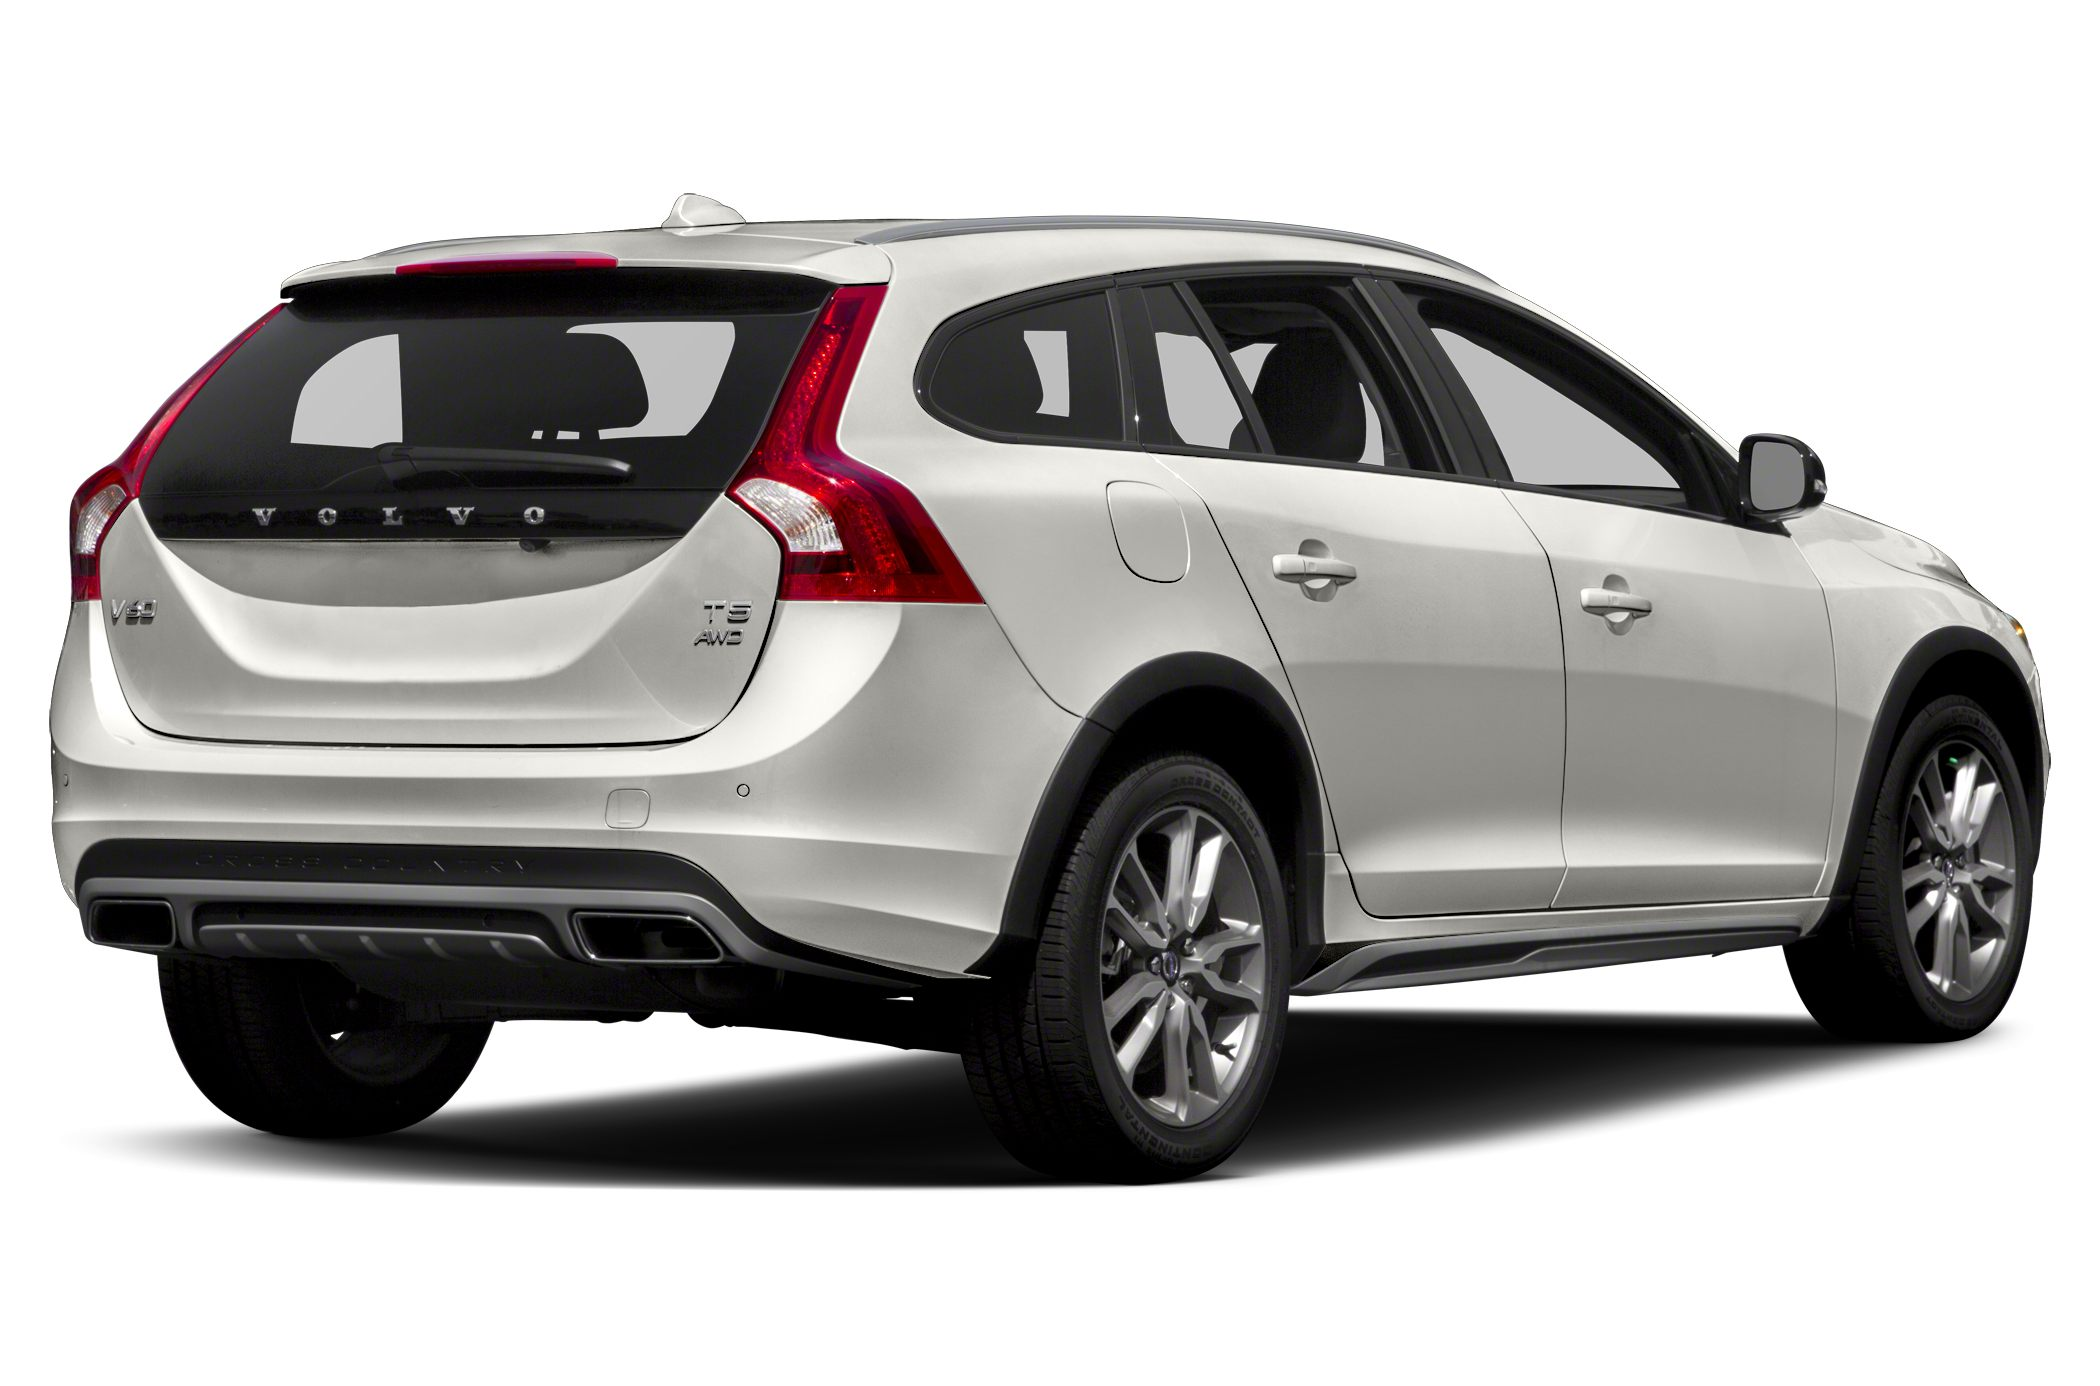 2015 5 volvo v60 cross country t5 platinum 4dr all wheel drive wagon pictures. Black Bedroom Furniture Sets. Home Design Ideas